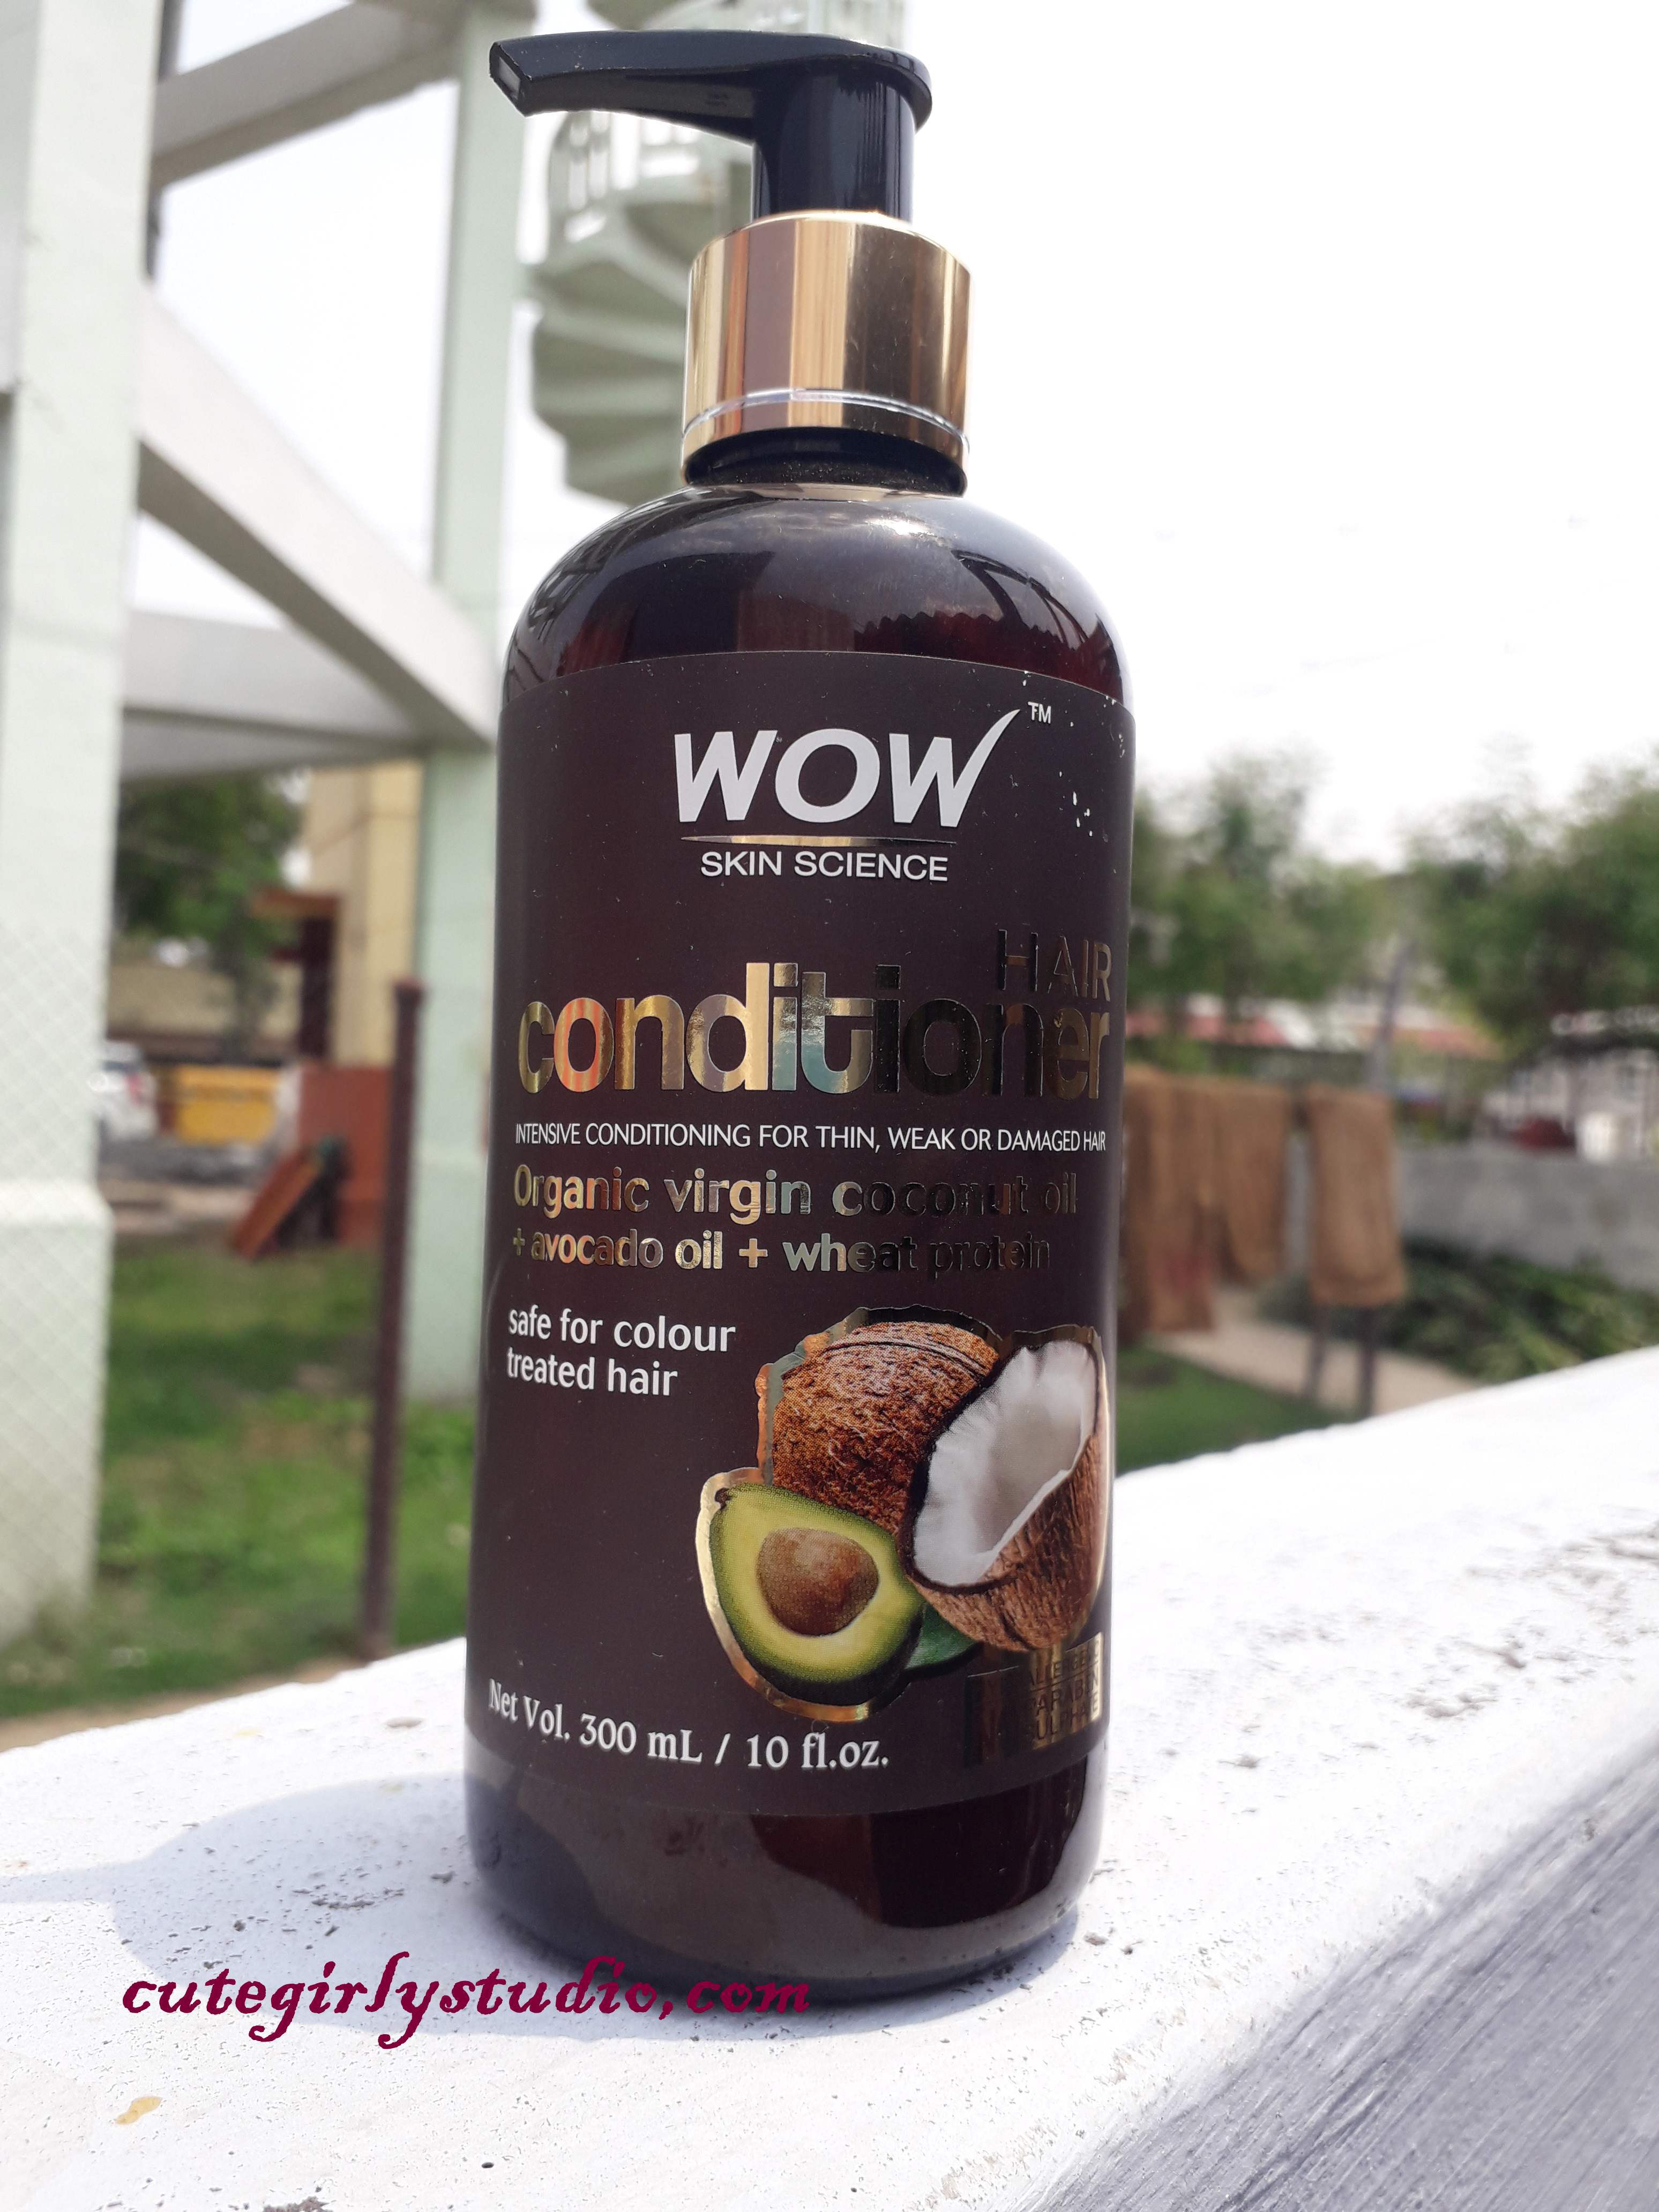 WOW skin science hair strengthening shampoo and WOW hair conditioner review